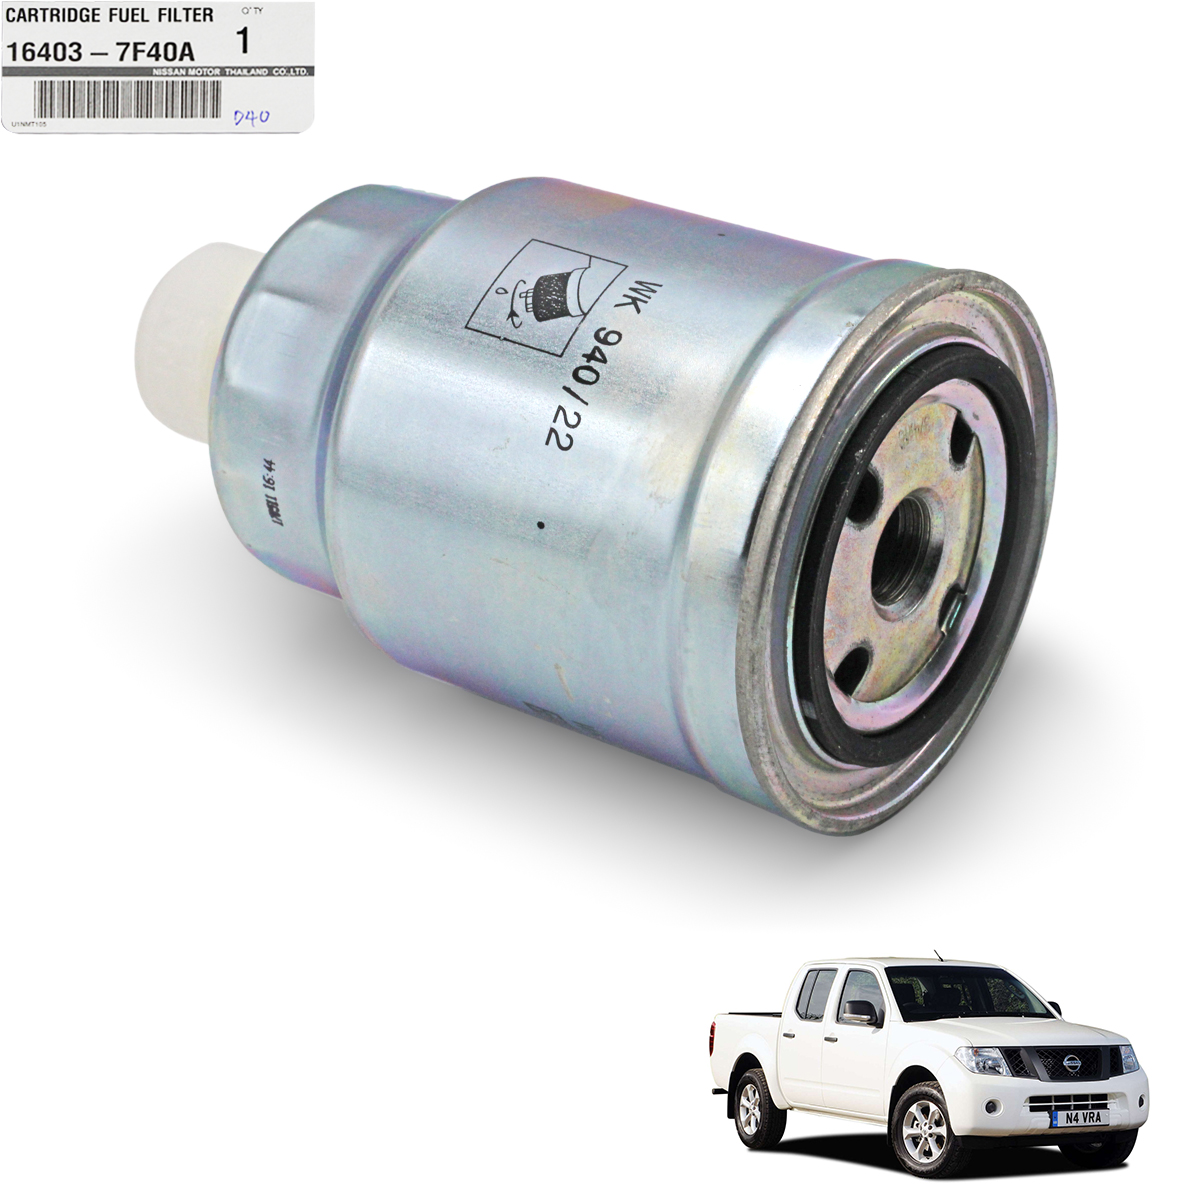 Genuine Cartridge Fuel Filter Silver Fits Nissan Navara Frontier D40 Vehicle Image Is Loading